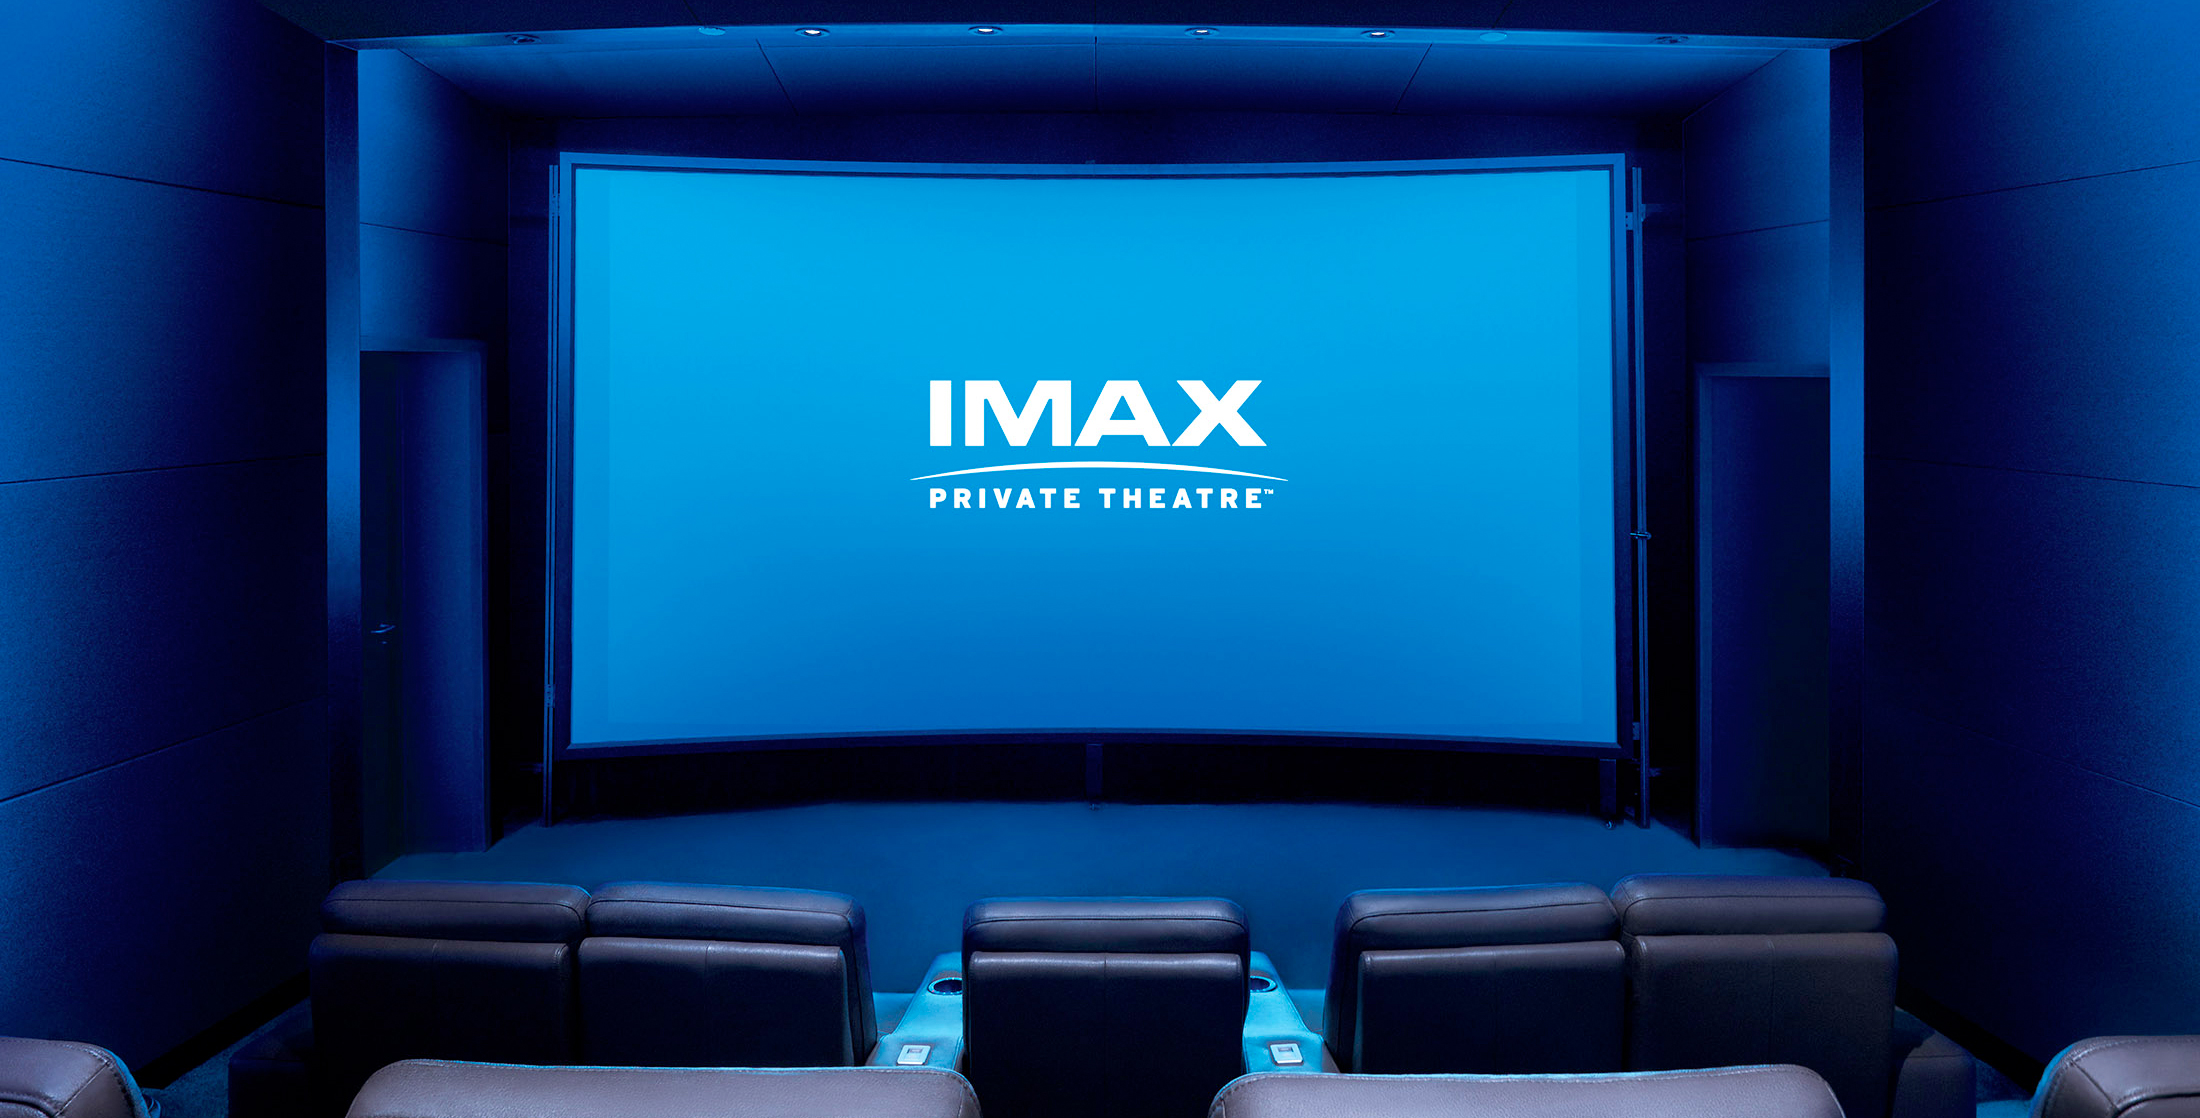 IMAX 3D Phasing Out as Chain Cites 'Clear Preference' for 2D